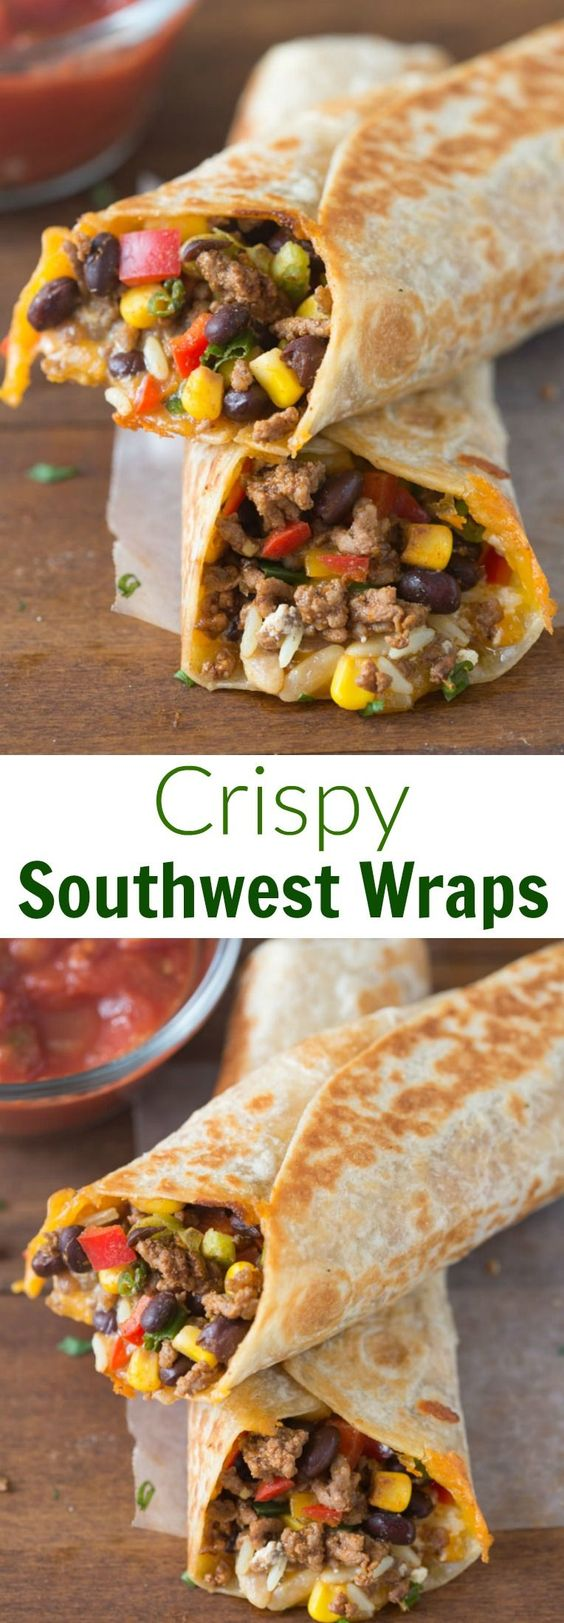 The best 30 minute meals recipes easy quick and delicious family friendly lunch and dinner Sw meals